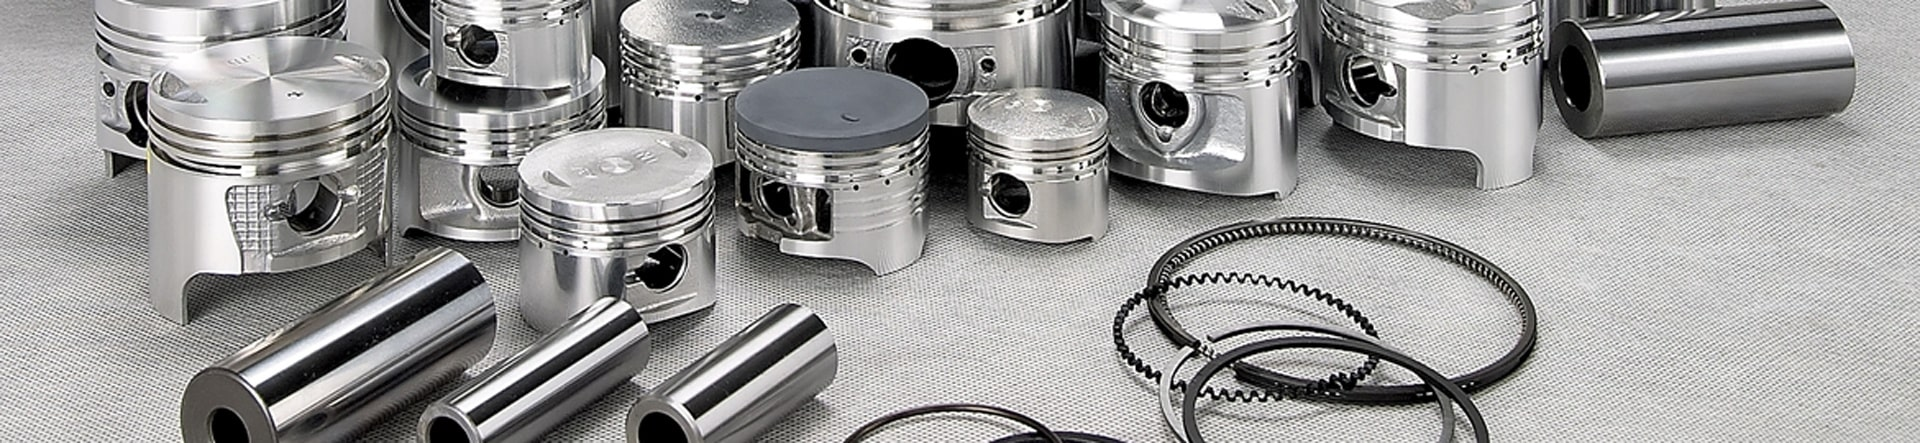 Piston | diesel engine spare parts